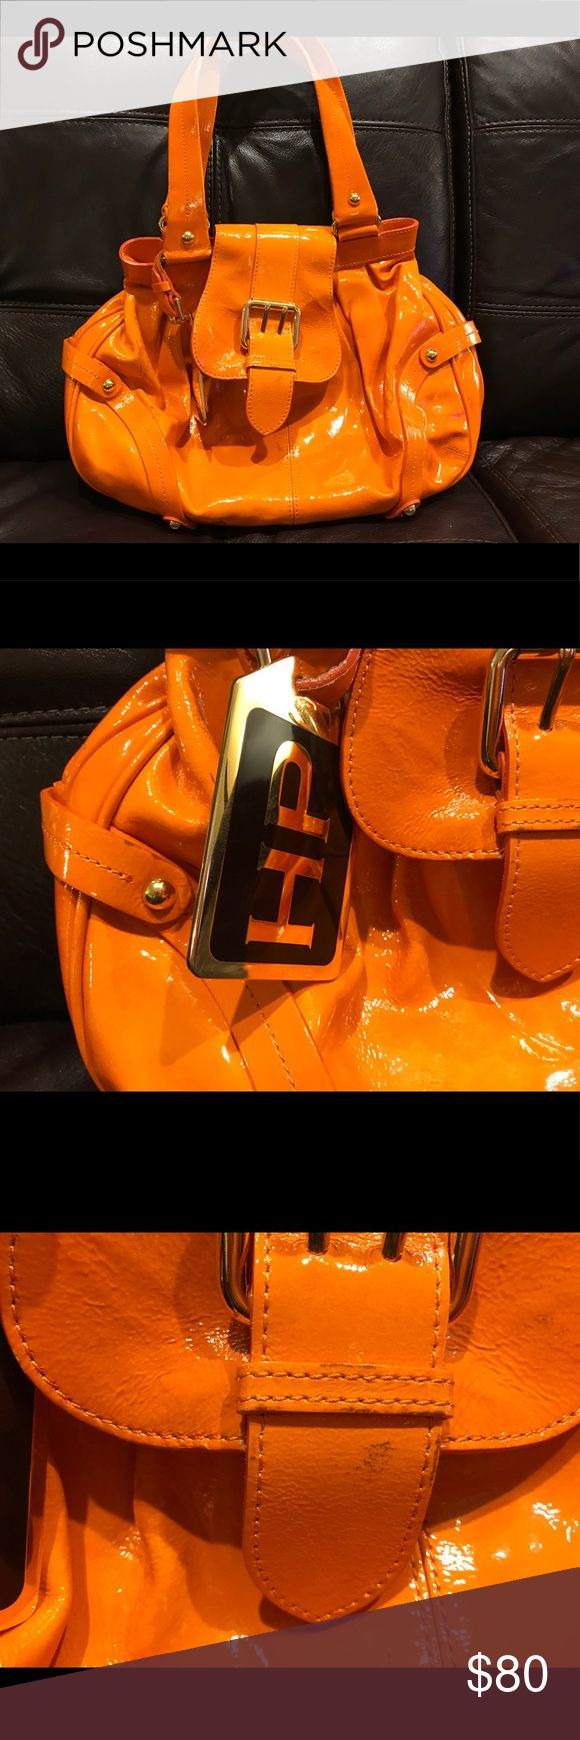 Dooney & Bourke Patent Leather Shoulder Bags Authentic Dooney & Bourke Hayden Panettiere HP Orange Shoulder Bag.  Good Condition. Some Ink Stains Shown In The Picture ( stains may be removed with rubbing alcohols or hairspray) Dooney & Bourke Bags Shoulder Bags